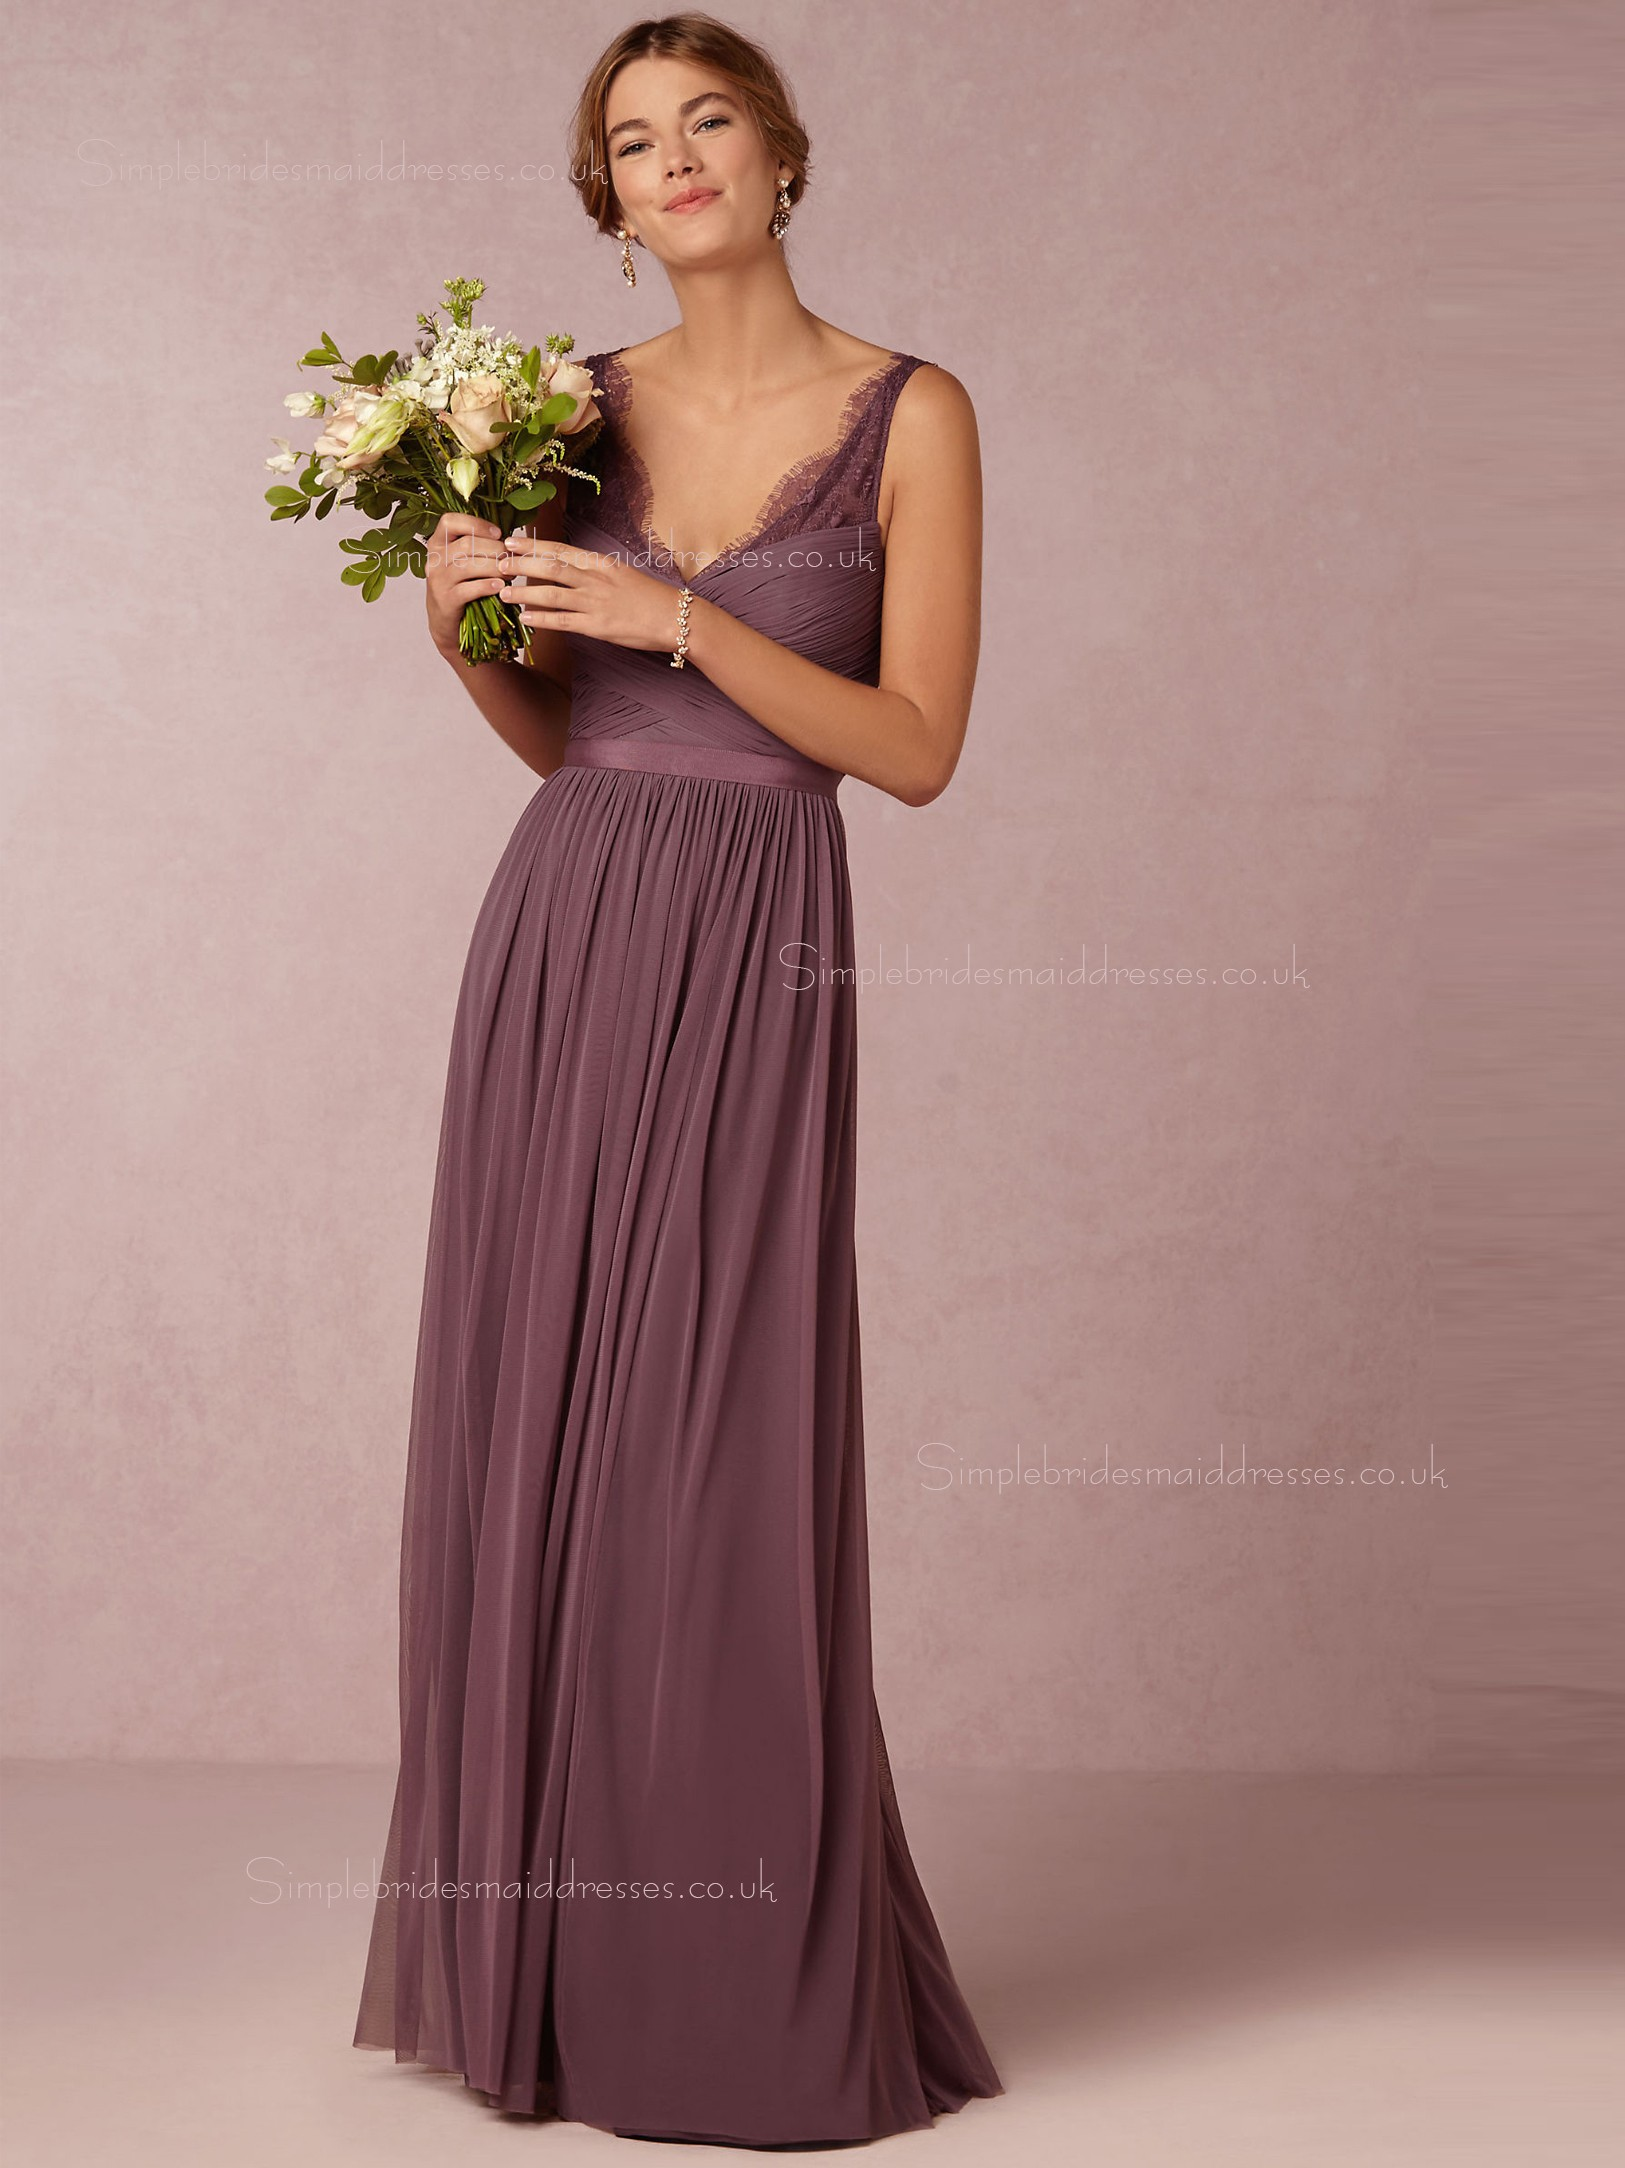 Chiffon bridesmaid dresses uk cheap chiffon bridesmaid dresses hot sale glorious ruched chiffon v neck floor length bridesmaid dresses ombrellifo Image collections